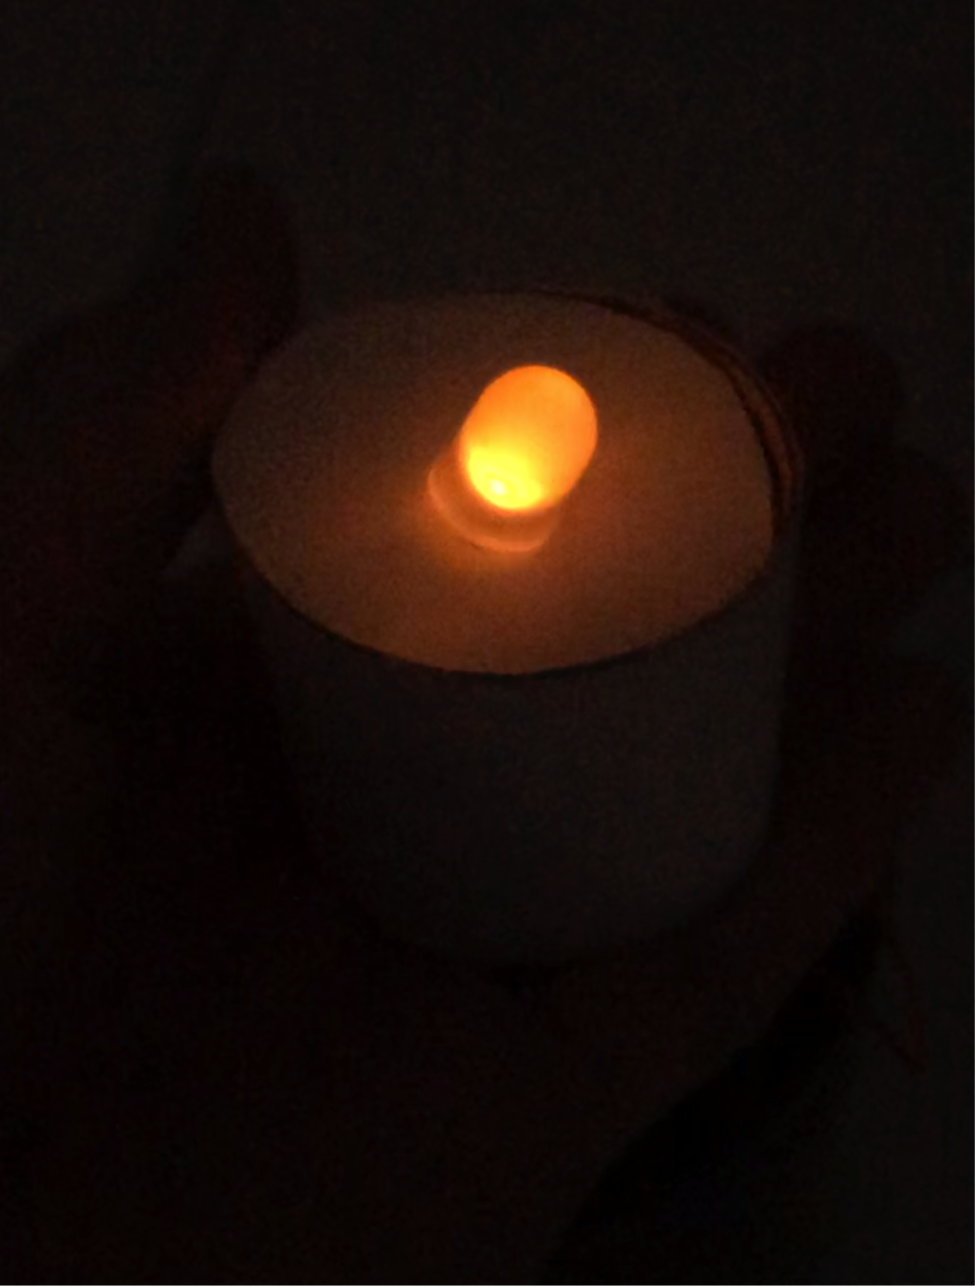 A tea light glowing, powered by microbes